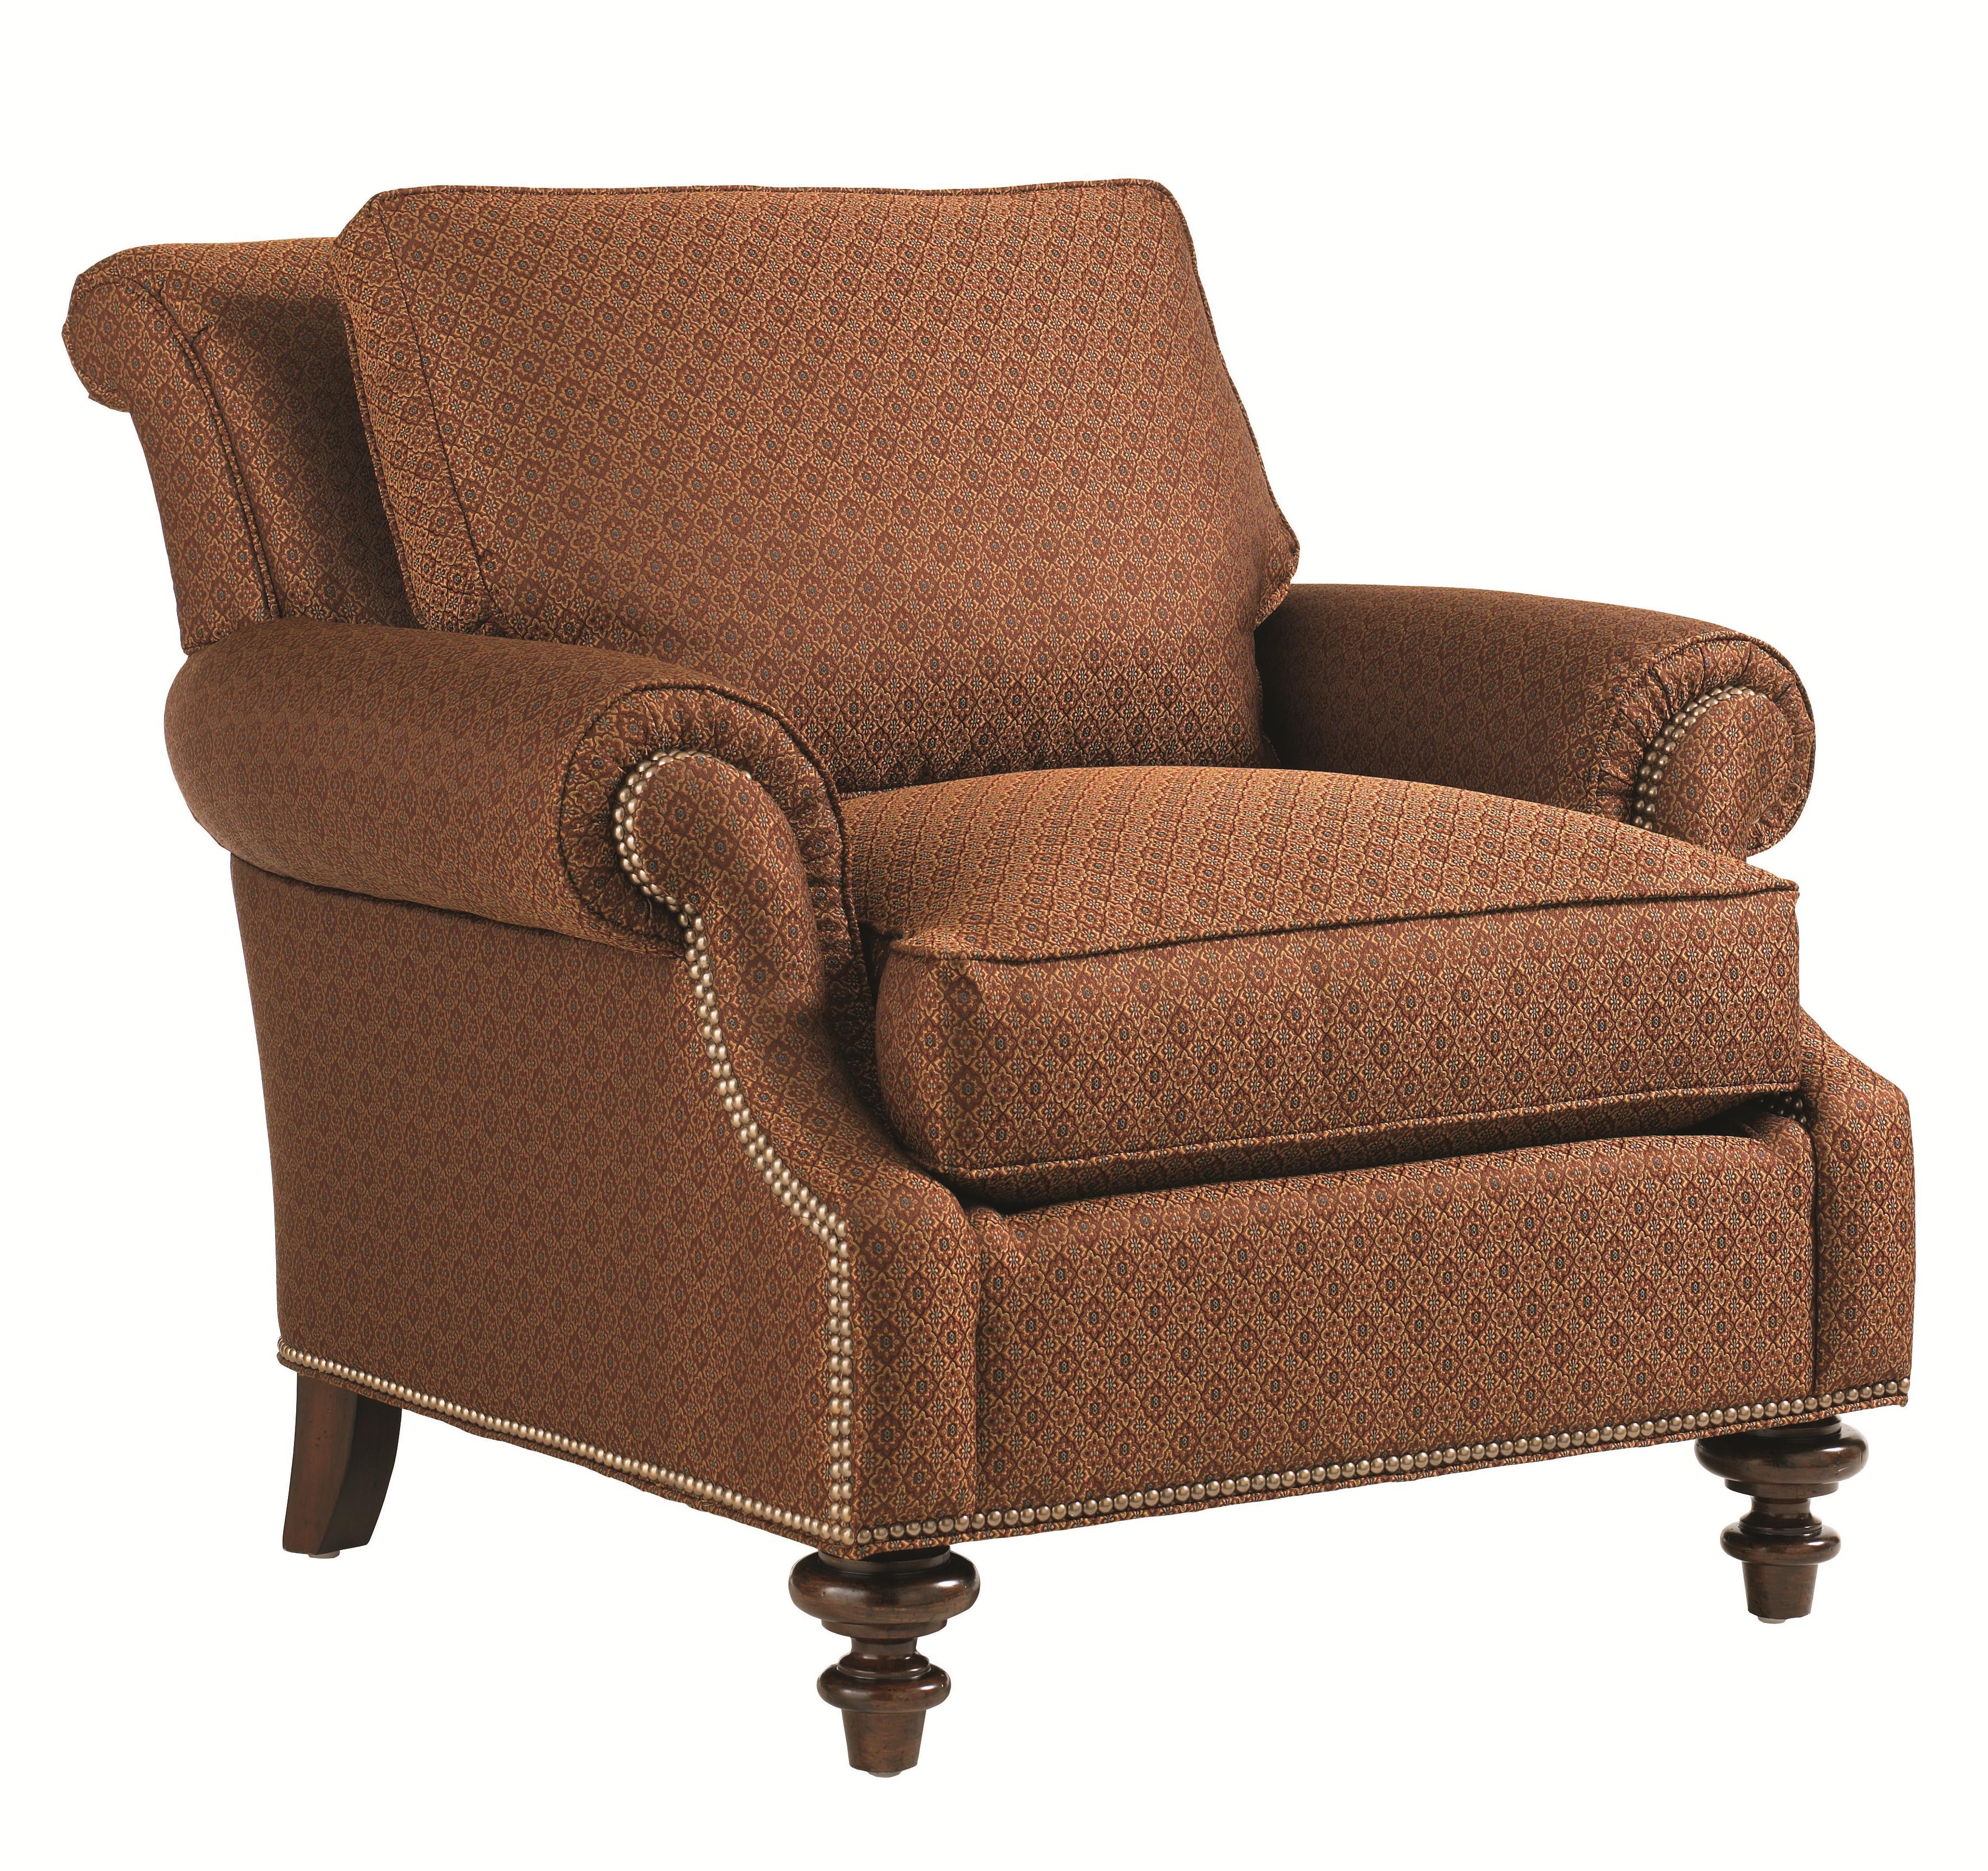 Lexington lexington upholstery darby loose back upholstered chair reeds furniture Lexington home brands outdoor furniture